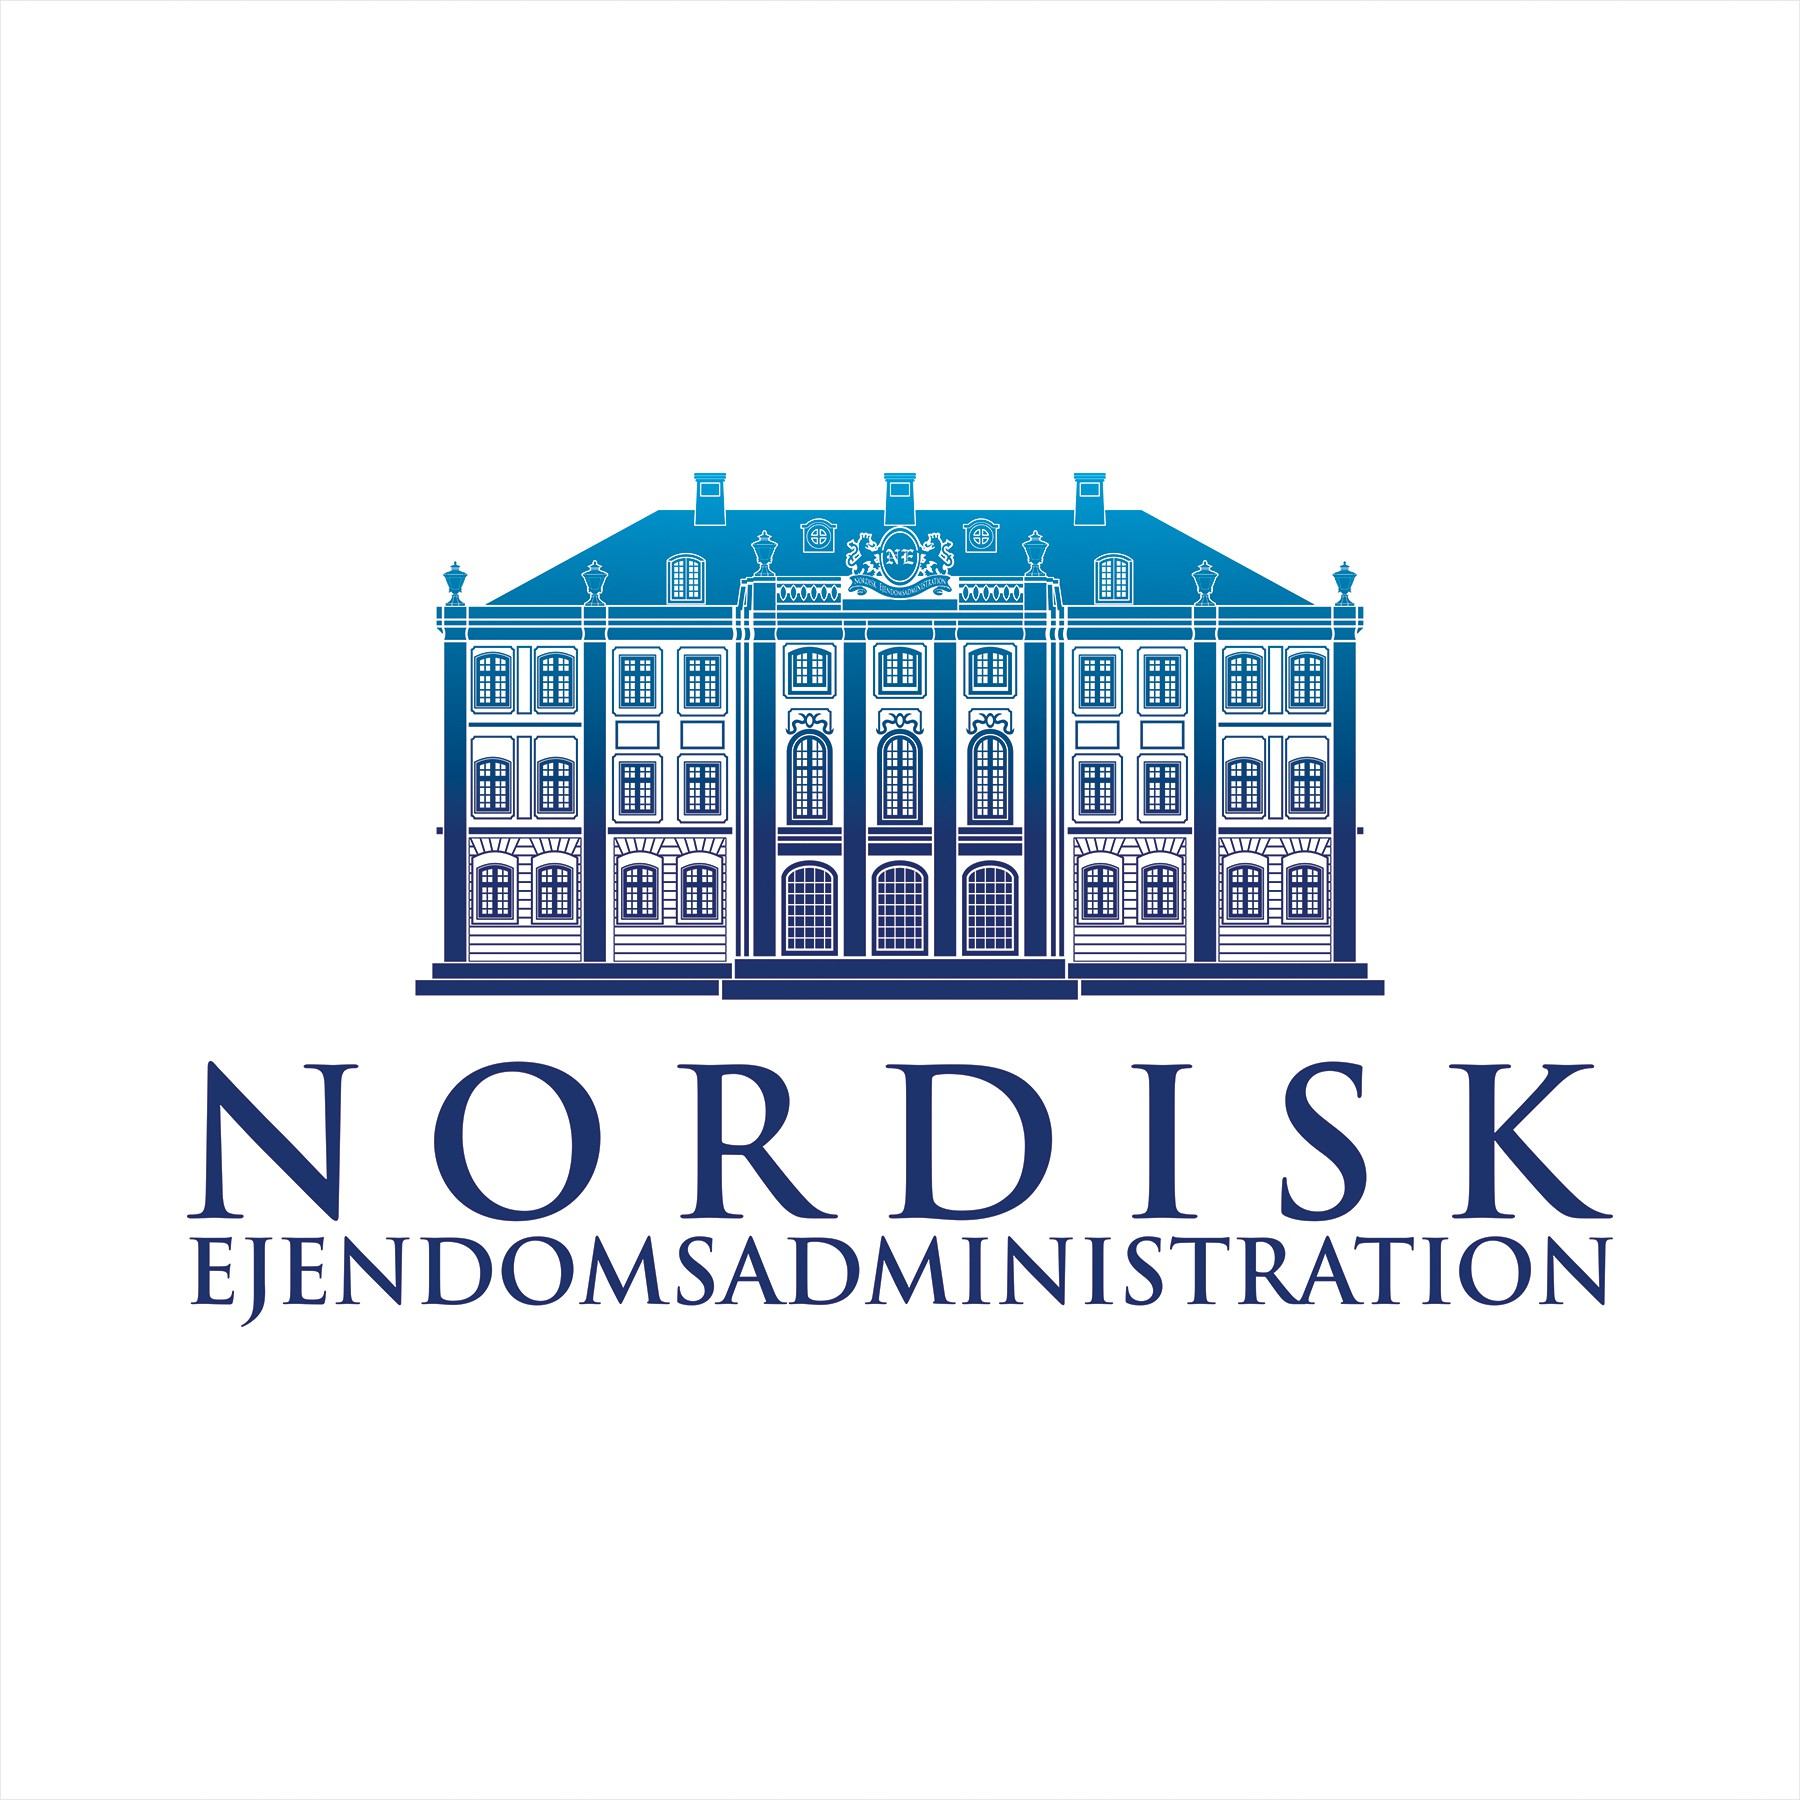 New logo wanted for Nordisk Ejendomsadministration